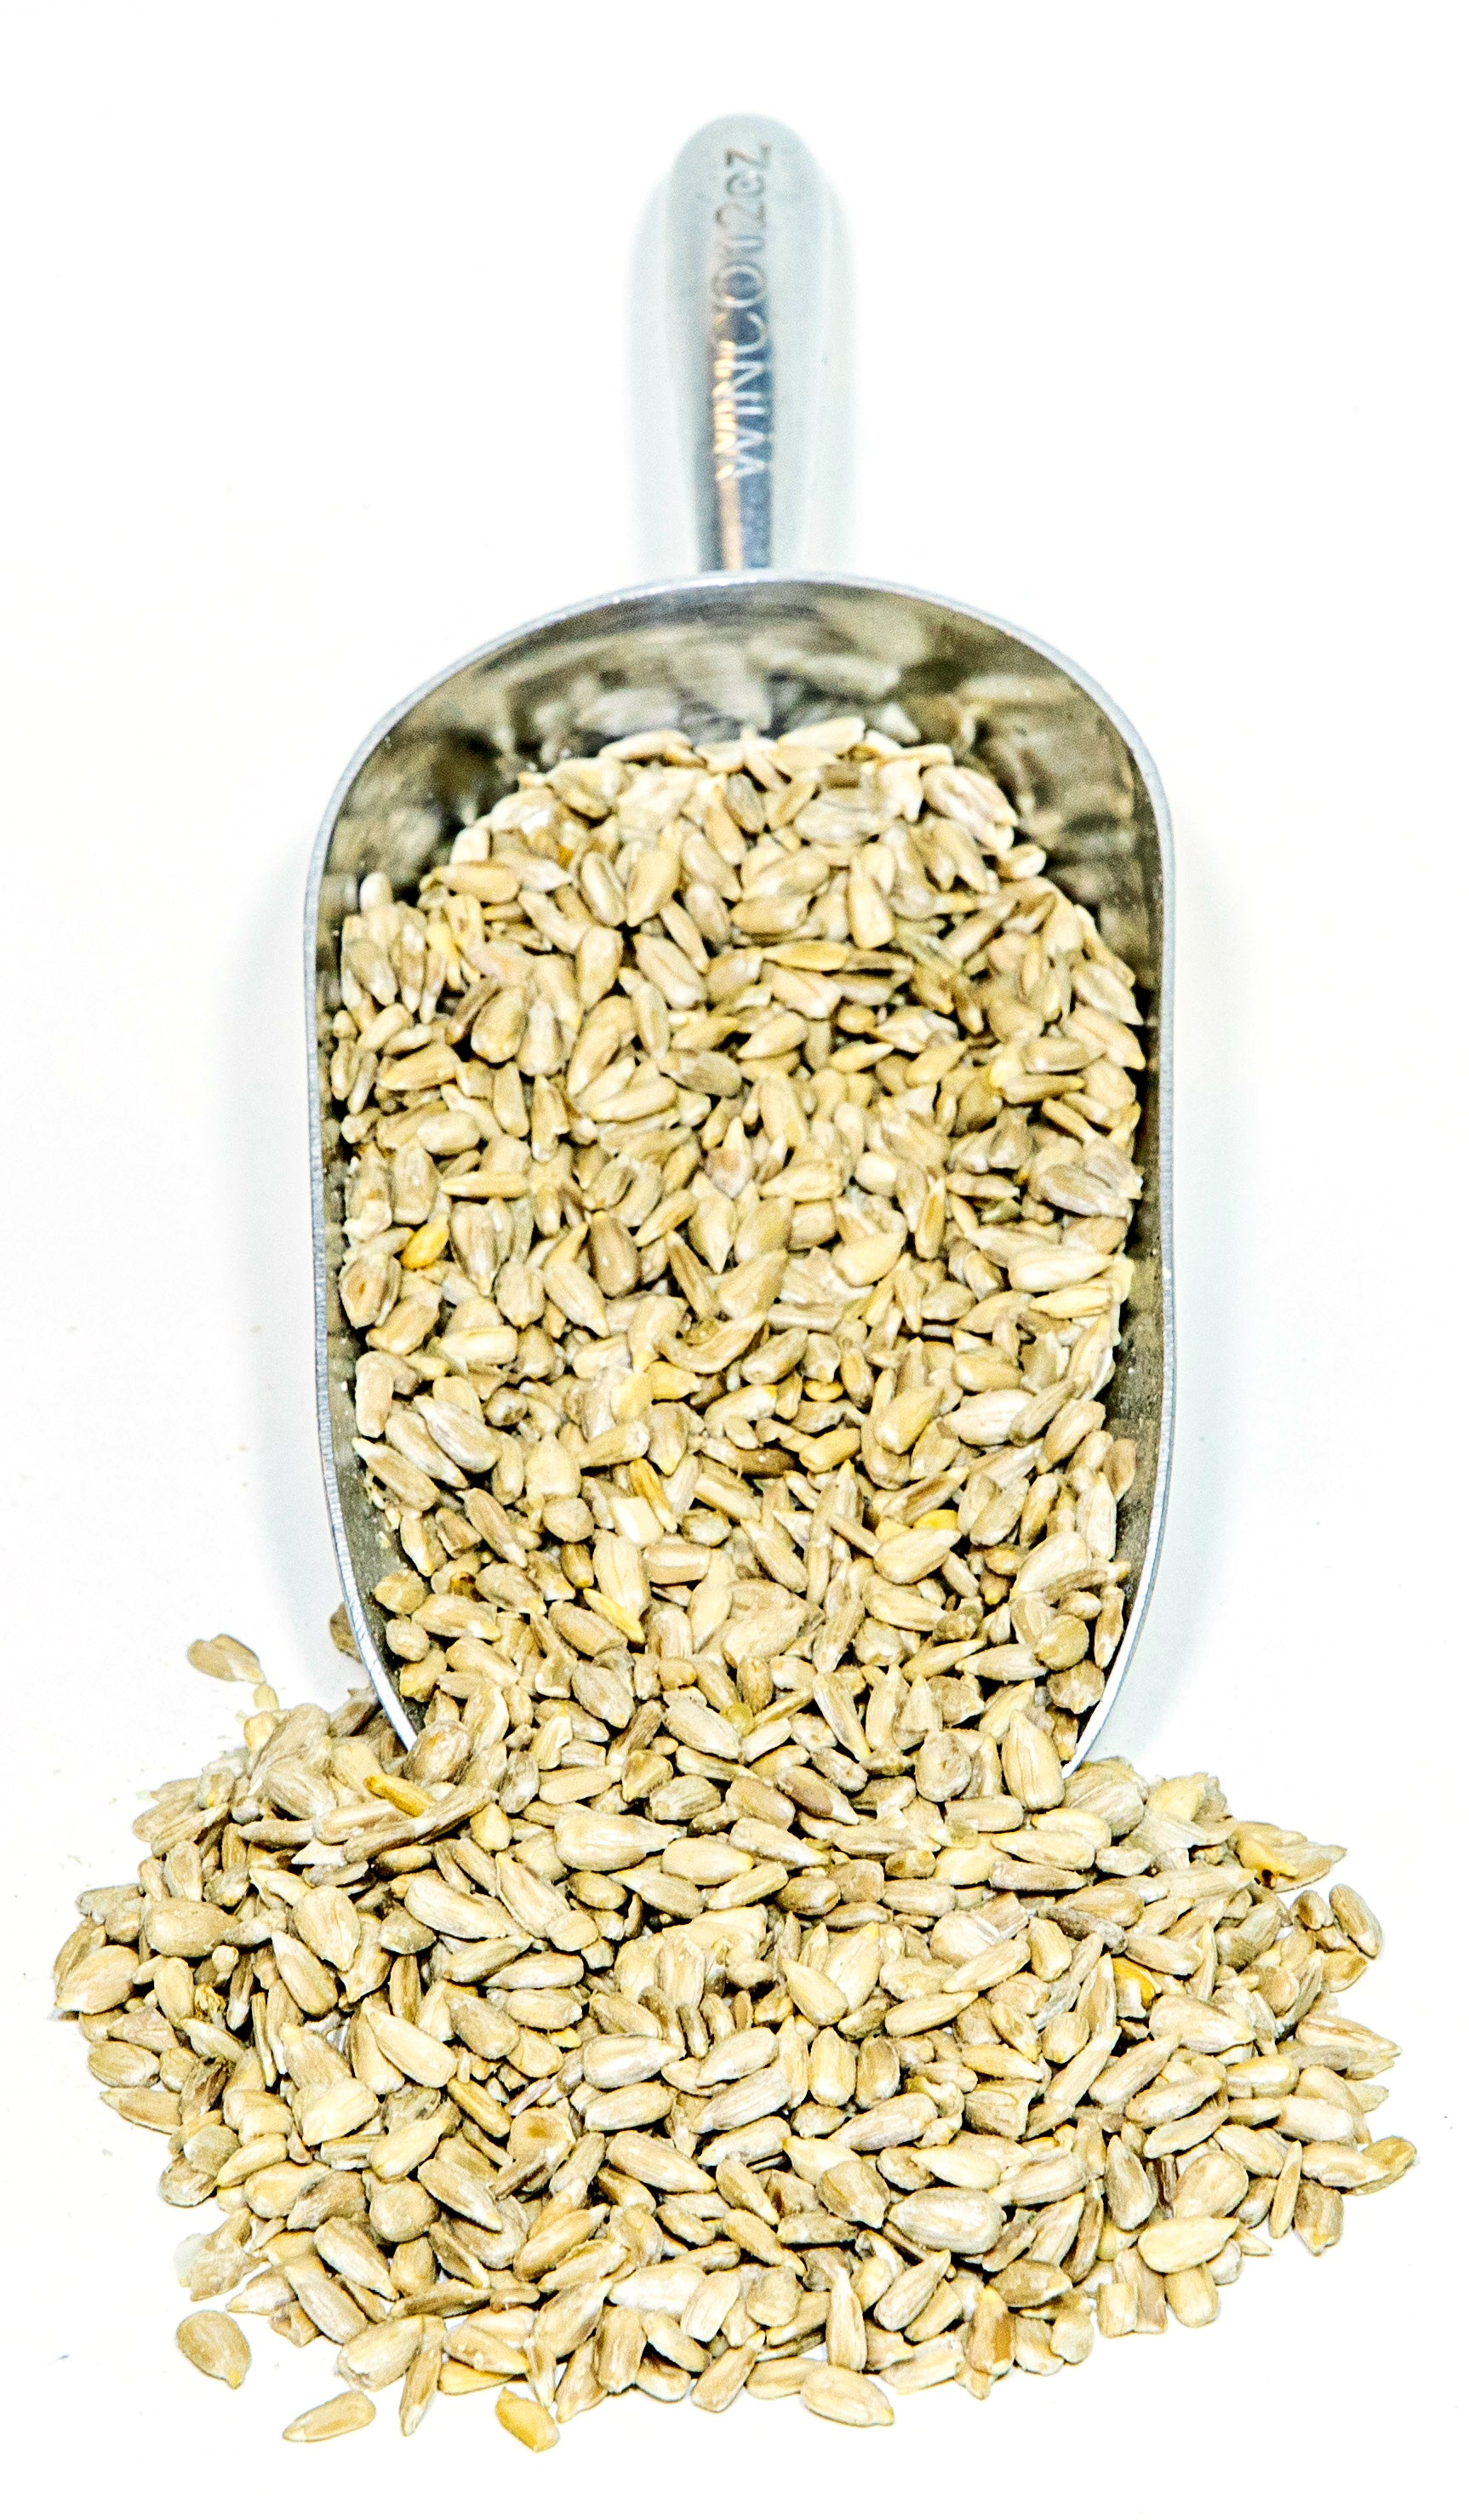 Raw Sunflower Seeds out of the Shell